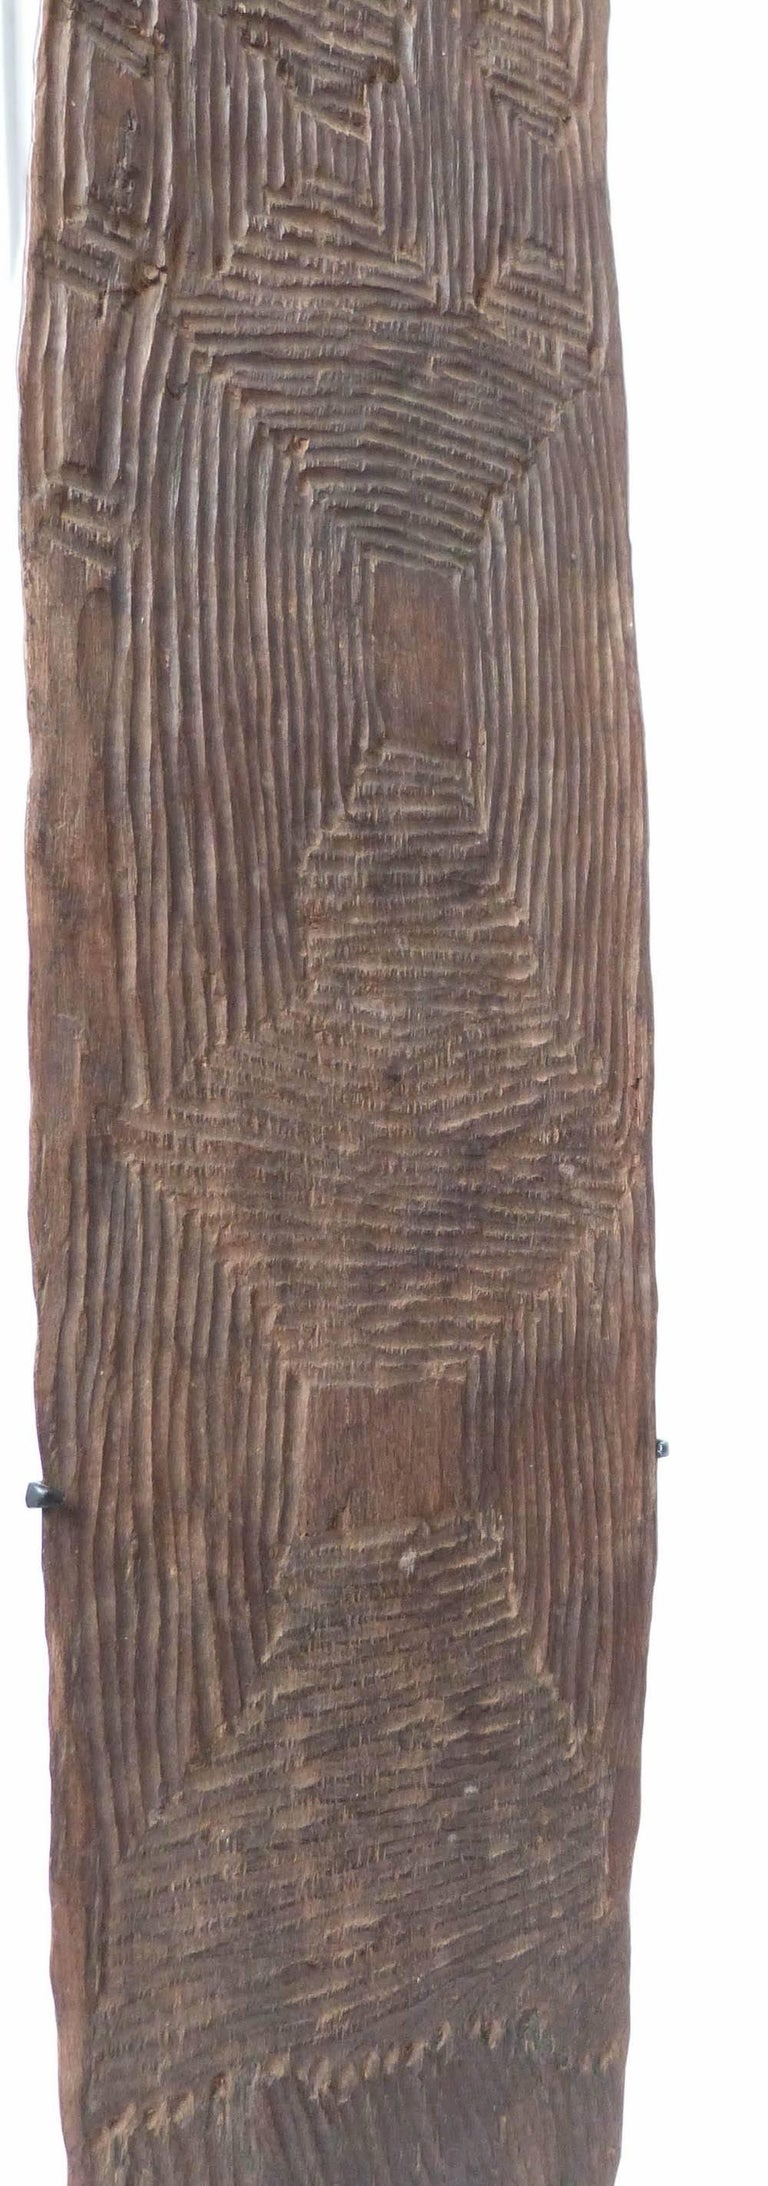 A lovely old Churinga, fine soft patina on both sides from rubbing during Aboriginal ceremonies. Deep vertical and linear carved design, done with a possum tooth or kangaroo claw. Traces of red ochre wash.